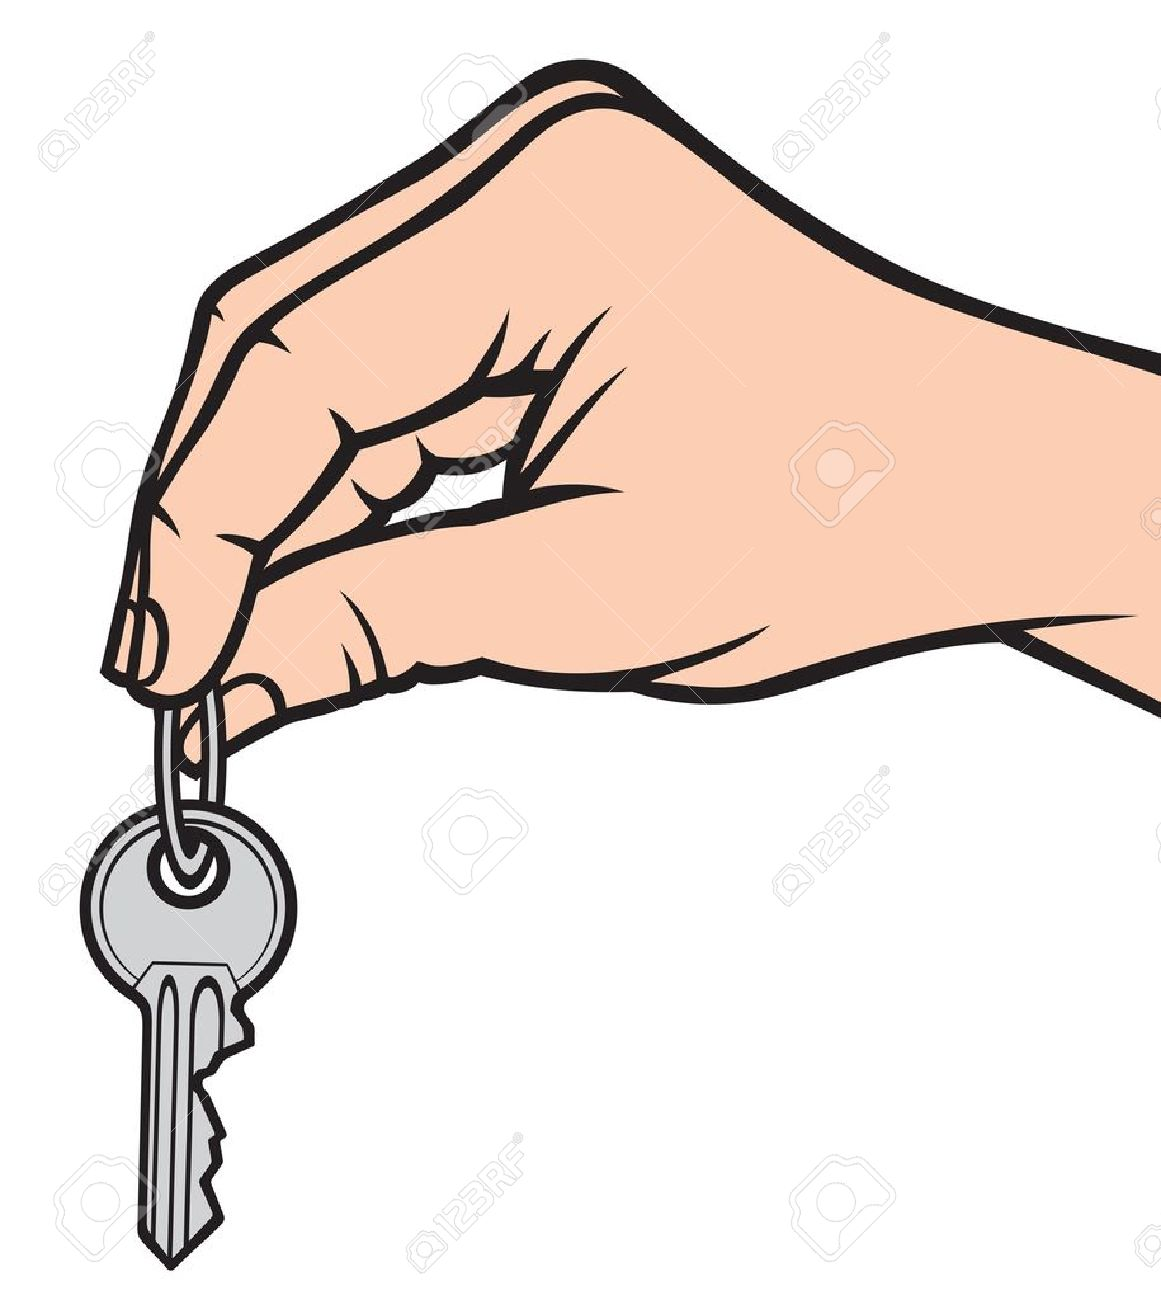 Image result for cartoon hand holding keys